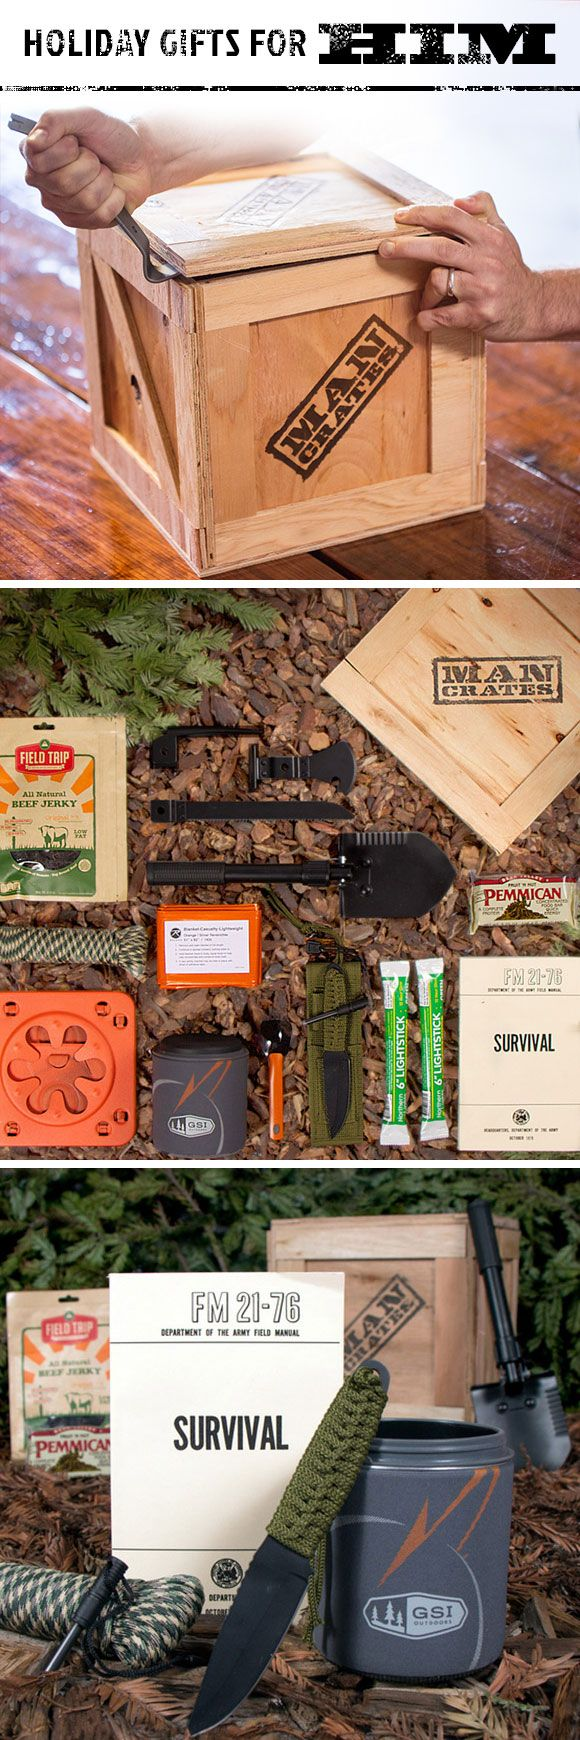 Trying to find a holiday gift that combines his love for the outdoors and staying alive? Give him the gift of preservation. The Outdoor Survival Crate has everything needed to endure whatever harrowing curveballs Mother Nature has been known to throw. Give any adventuring guy the equipment to not just challenge, but conquer the elements and the unknown.